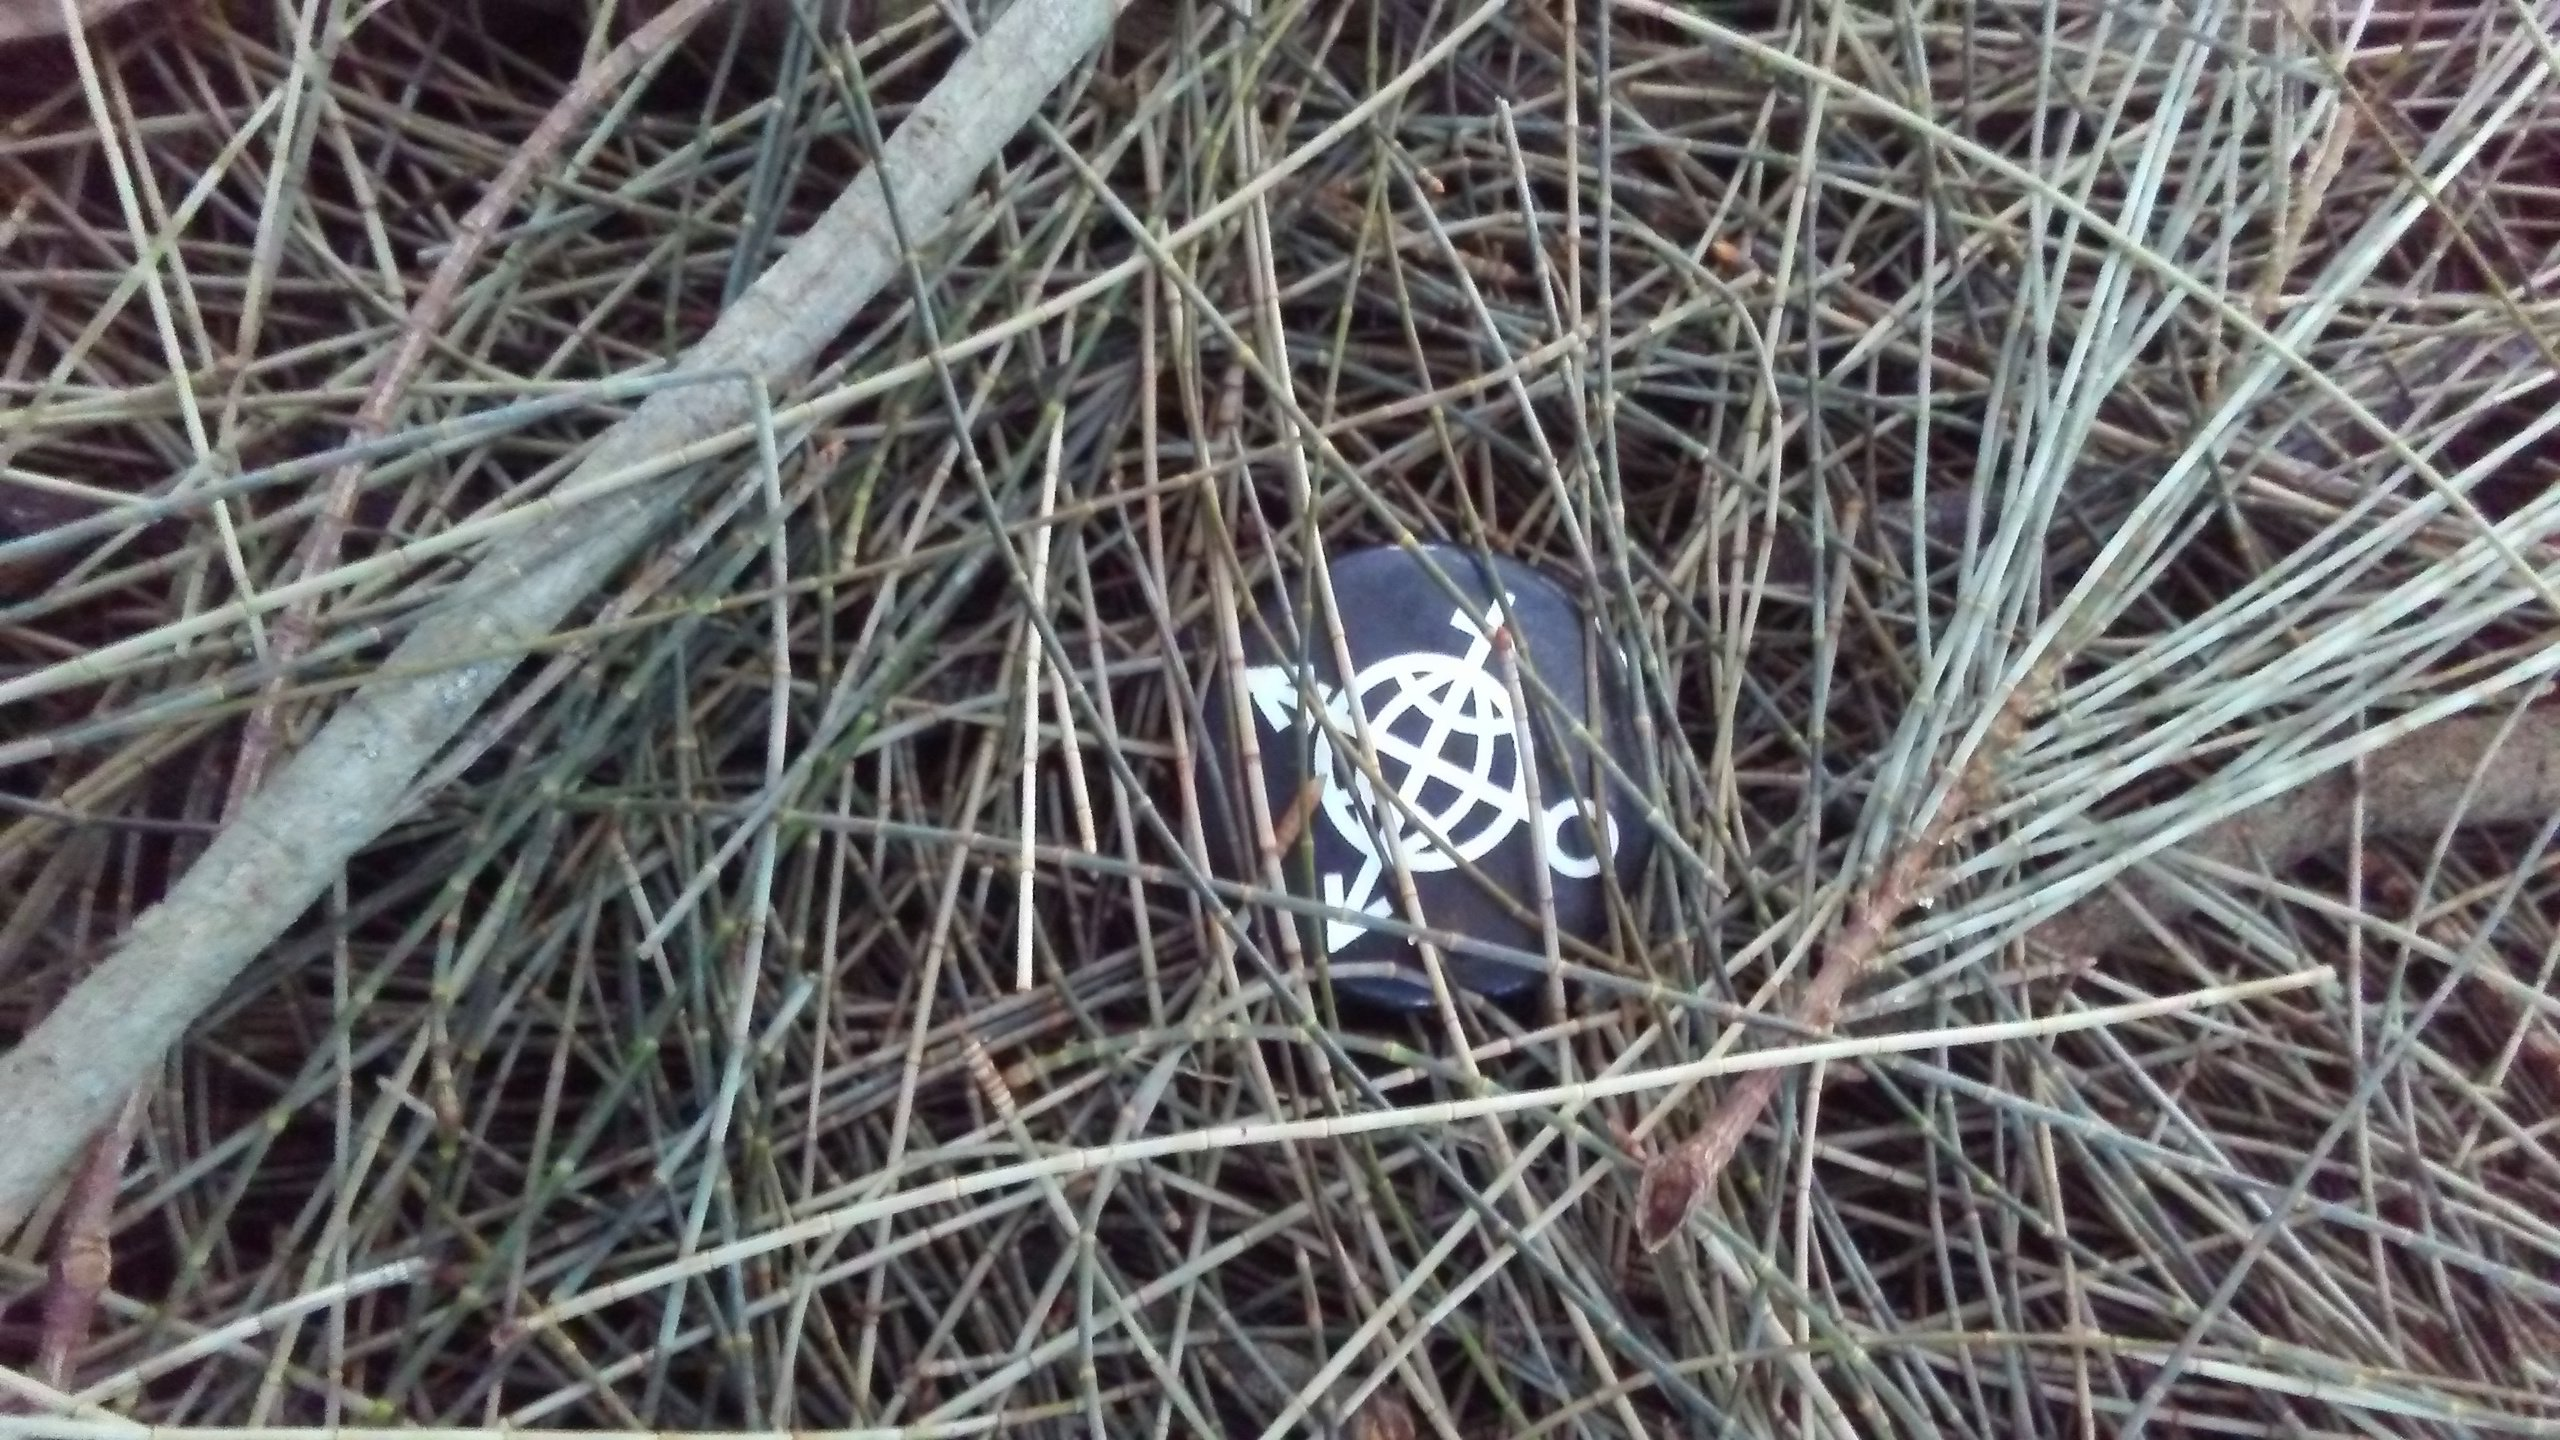 20190202_074414-jpg.48828_Needle in a Haystack_Missed Connections_Squat the Planet_4:05 AM